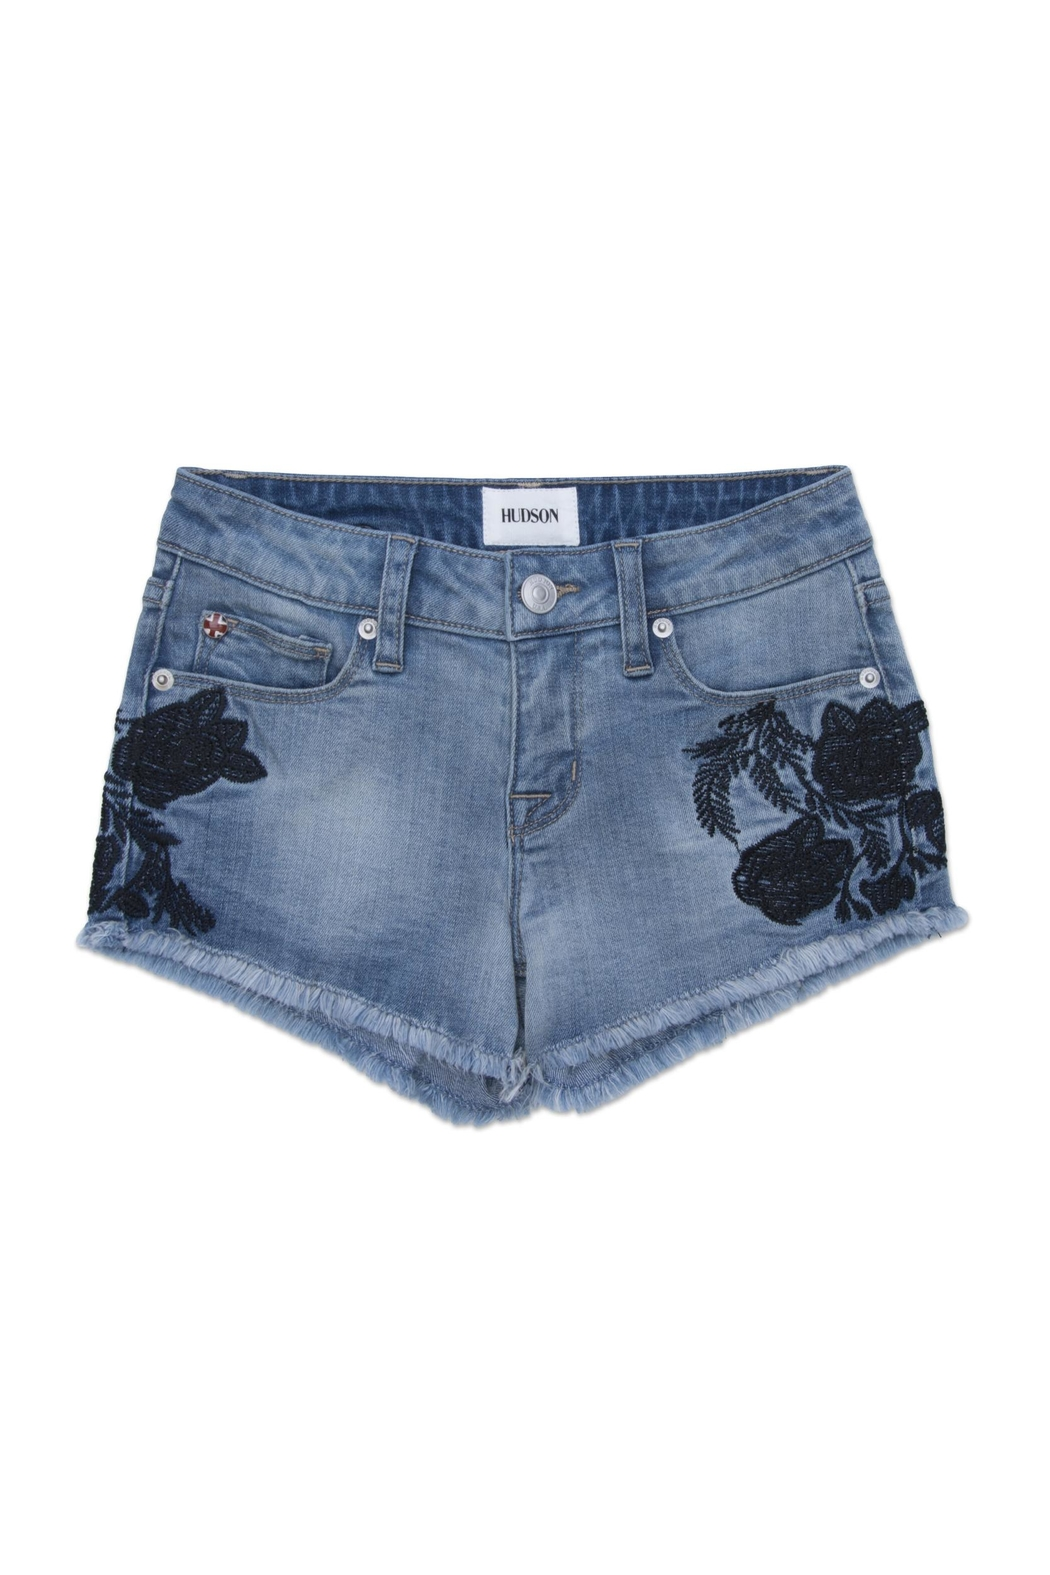 Hudson Jeans Iris Embroidered Short - Main Image